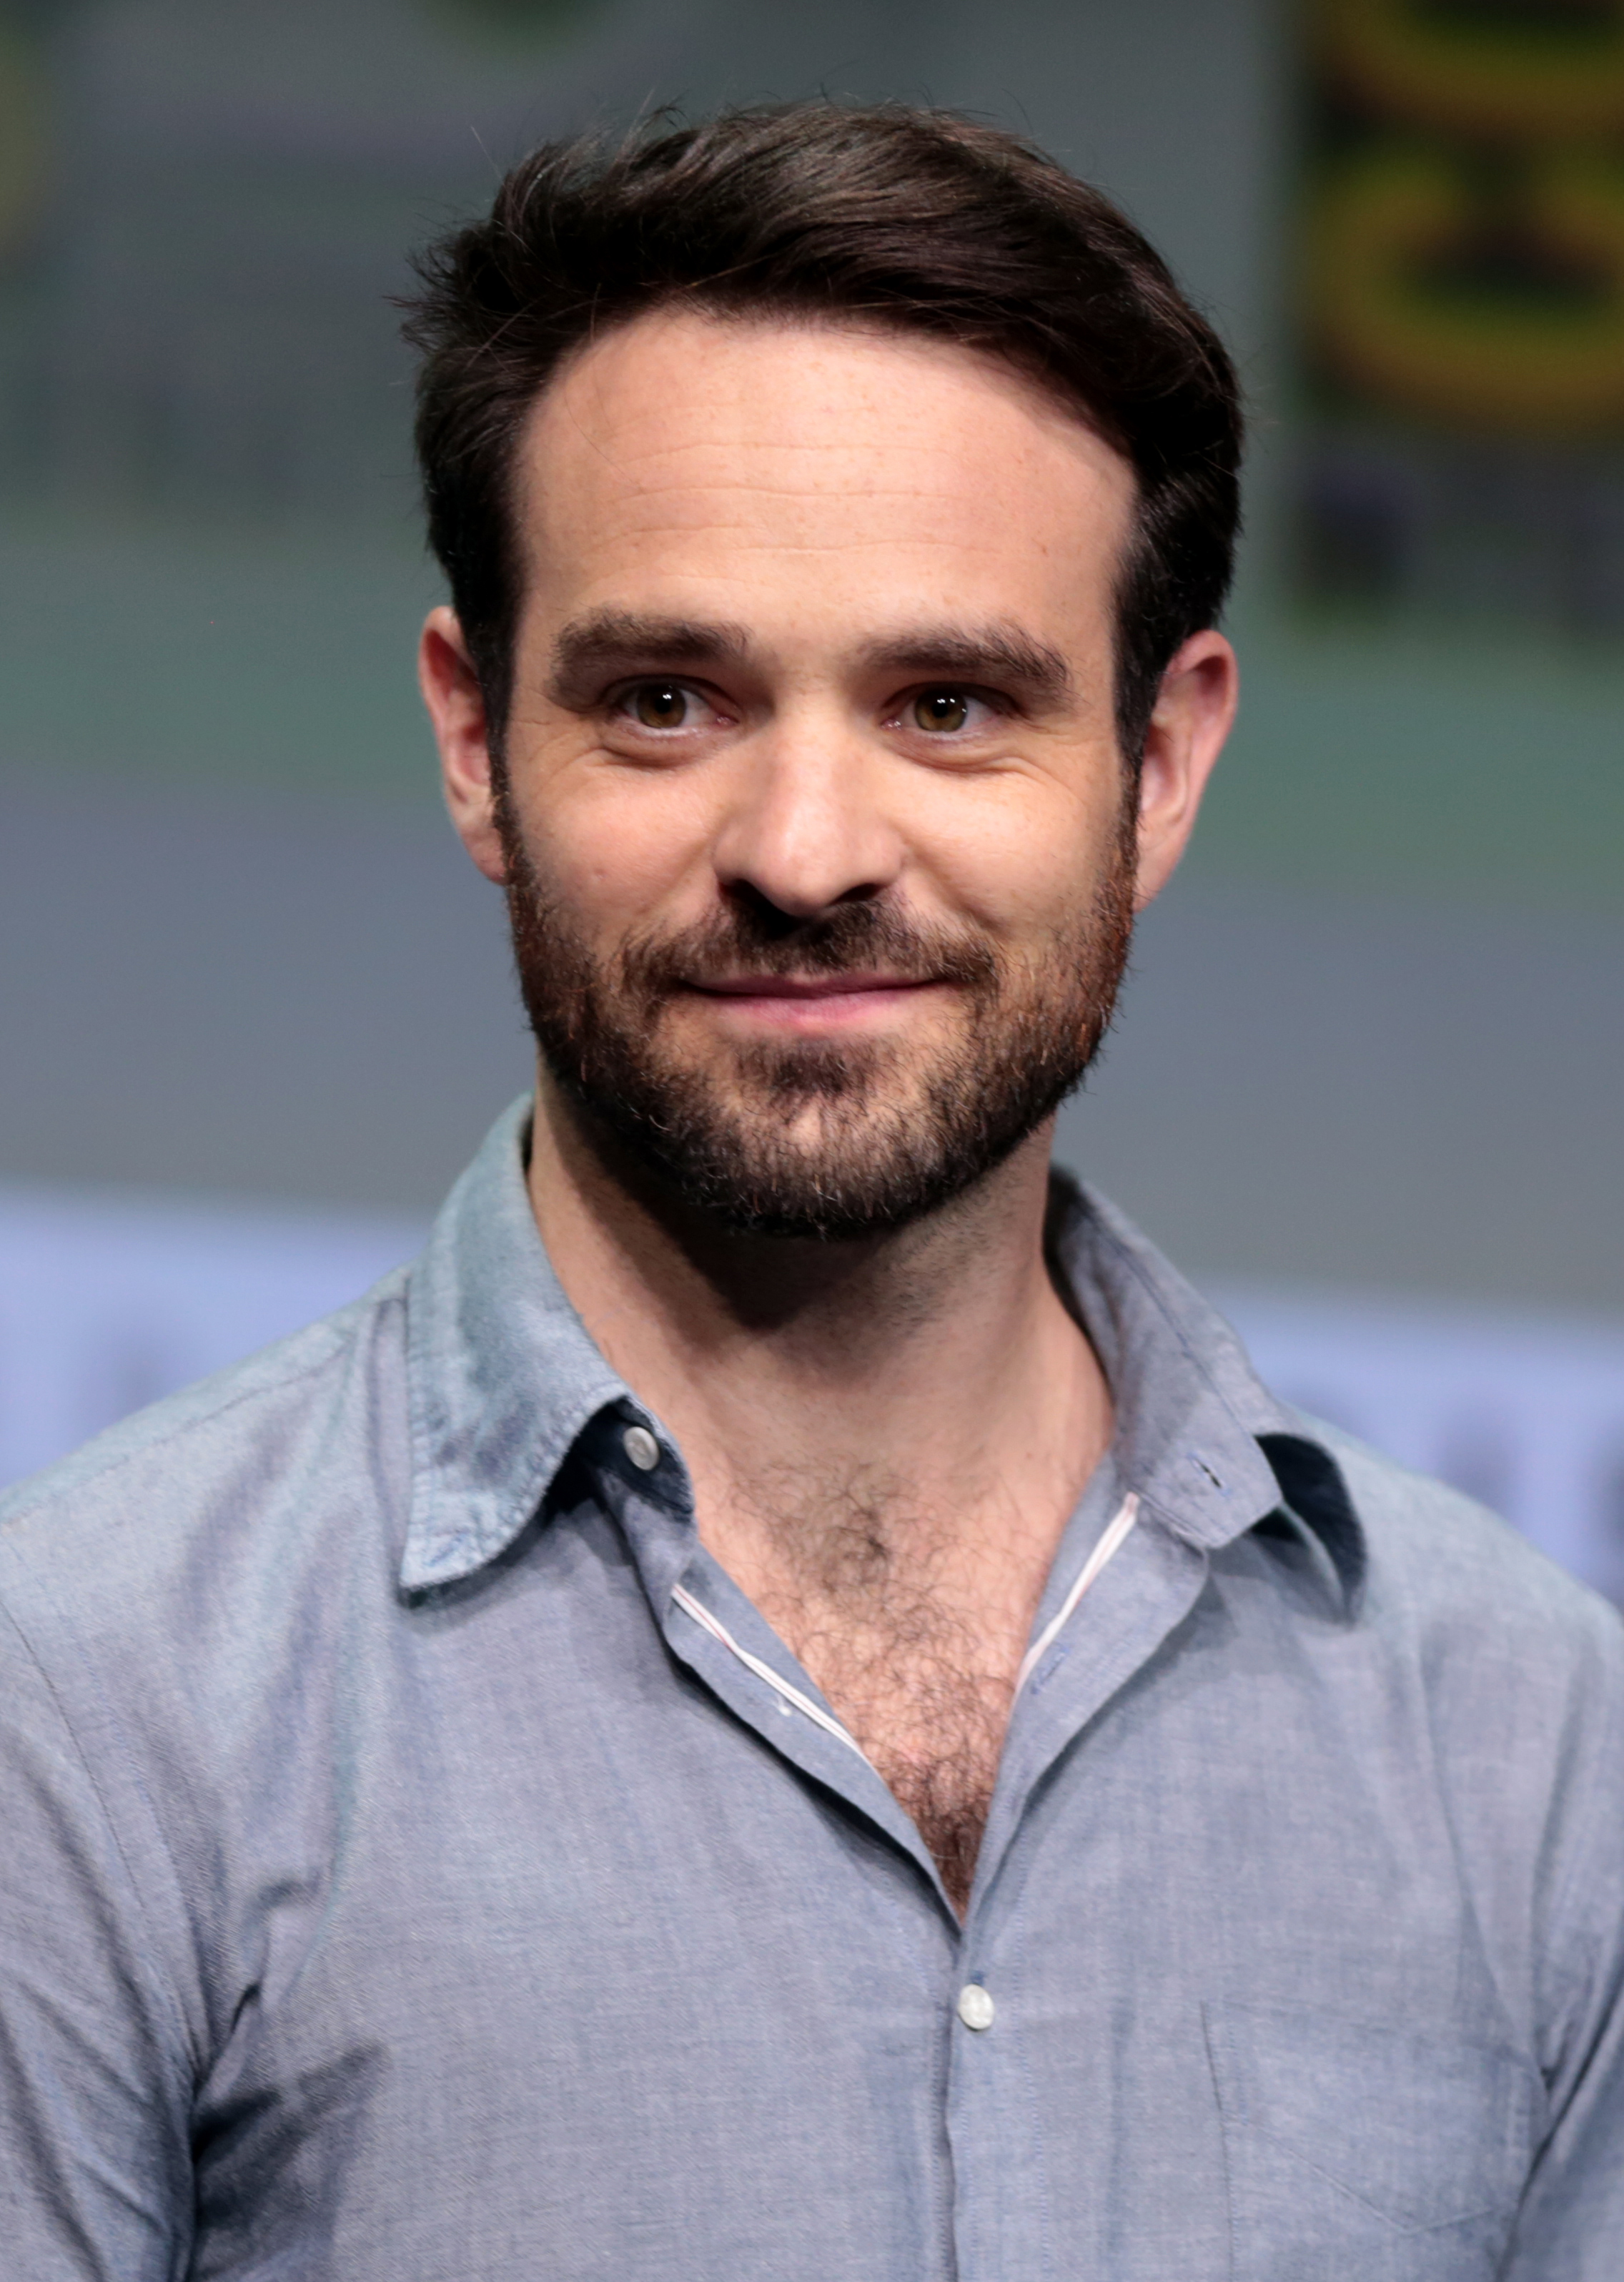 The 36-year old son of father Andrew Cox and mother Trisha Cox Charlie Cox in 2019 photo. Charlie Cox earned a  million dollar salary - leaving the net worth at 13 million in 2019